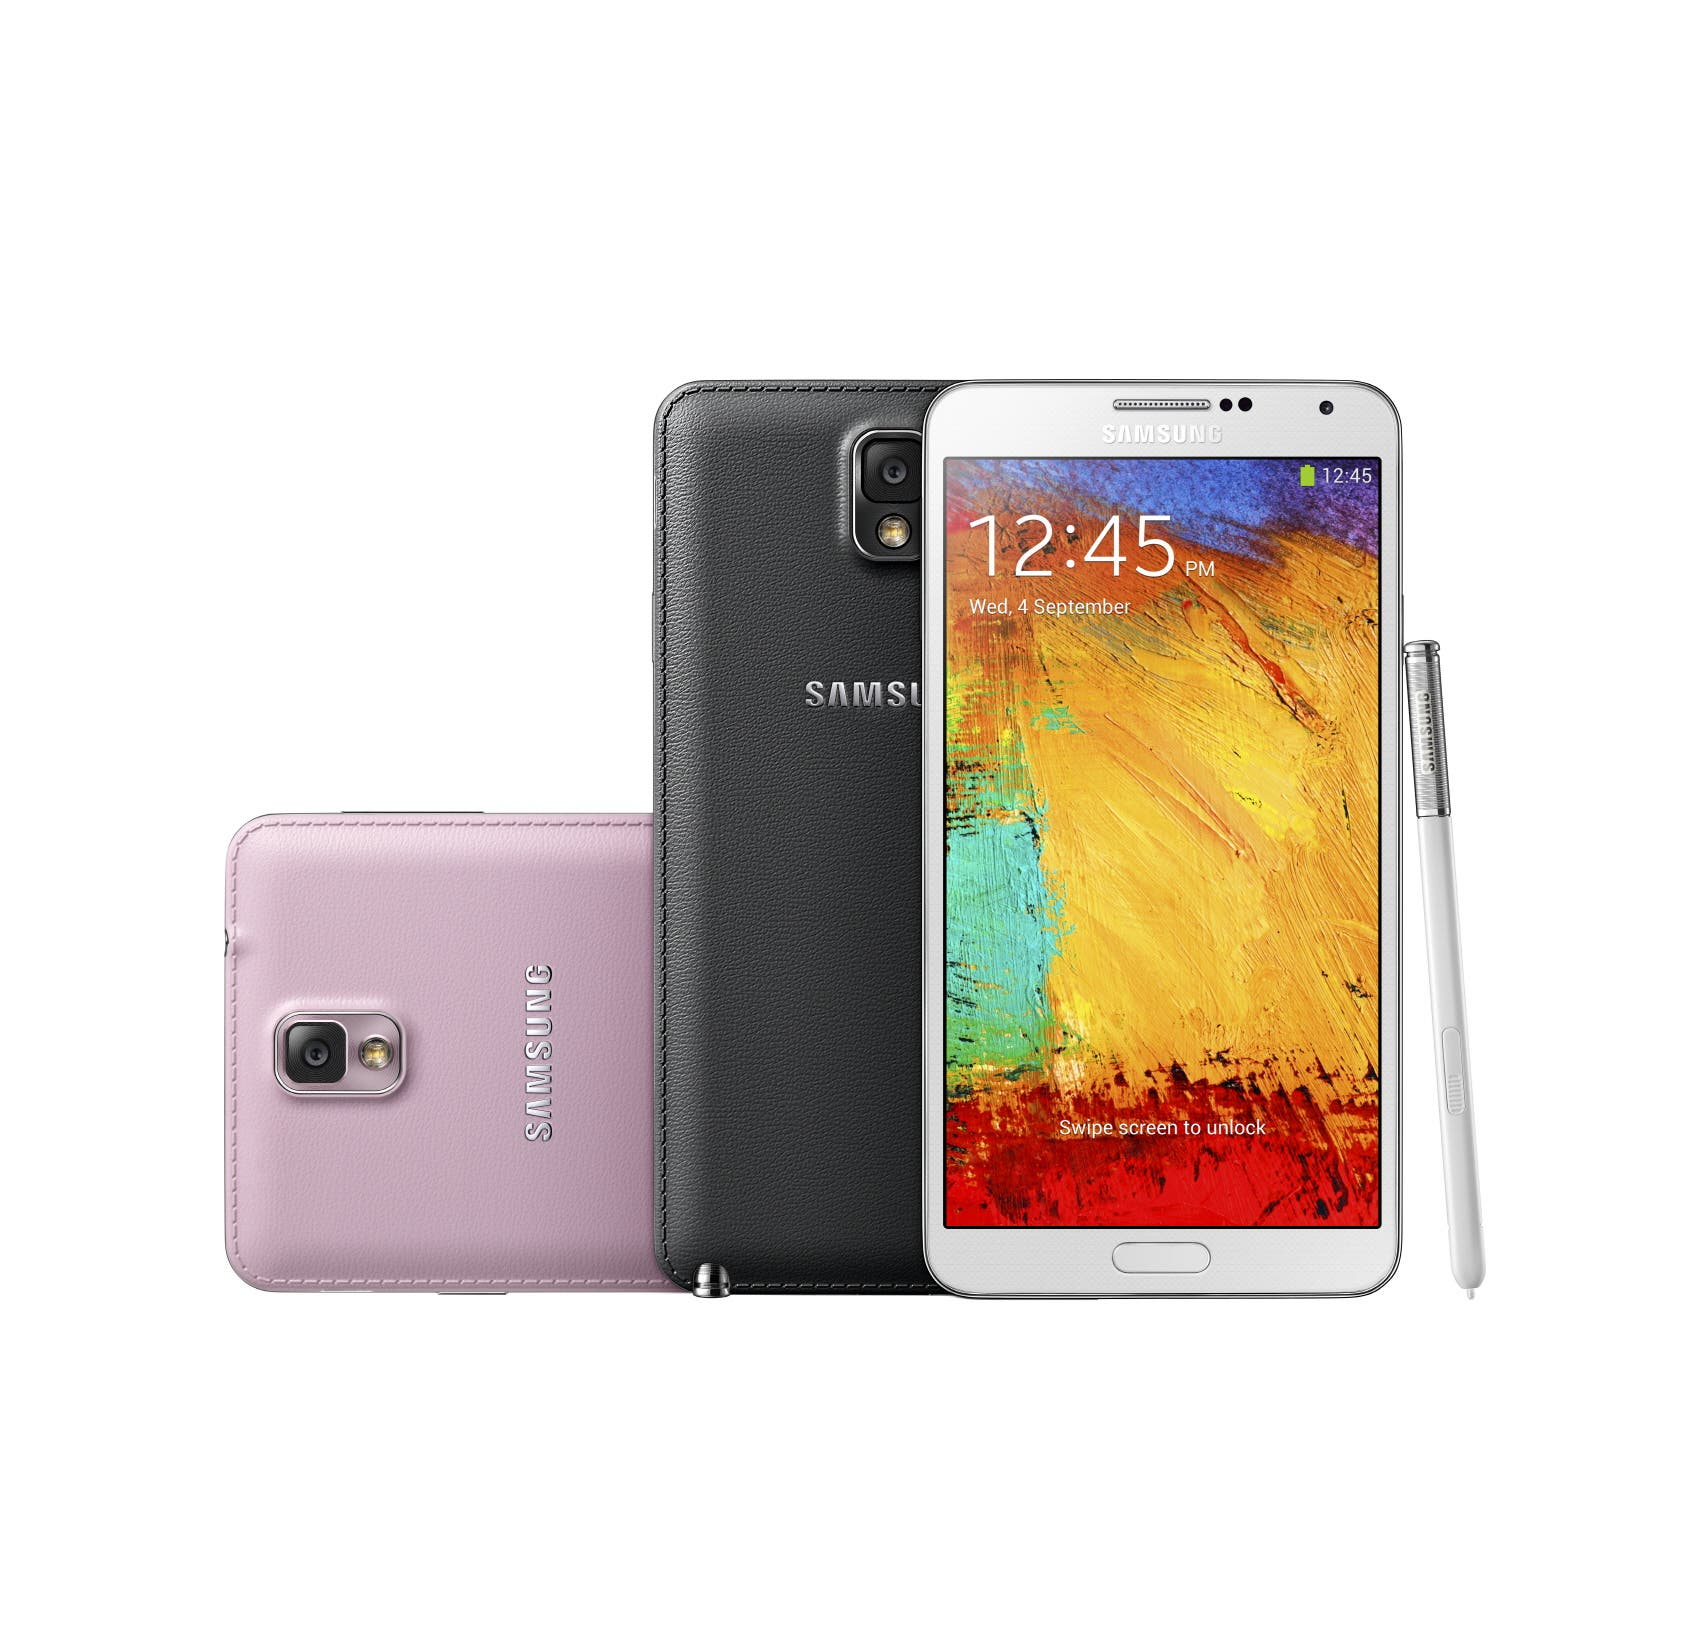 IFA: Introducing Samsung Galaxy Note 3 [Video]